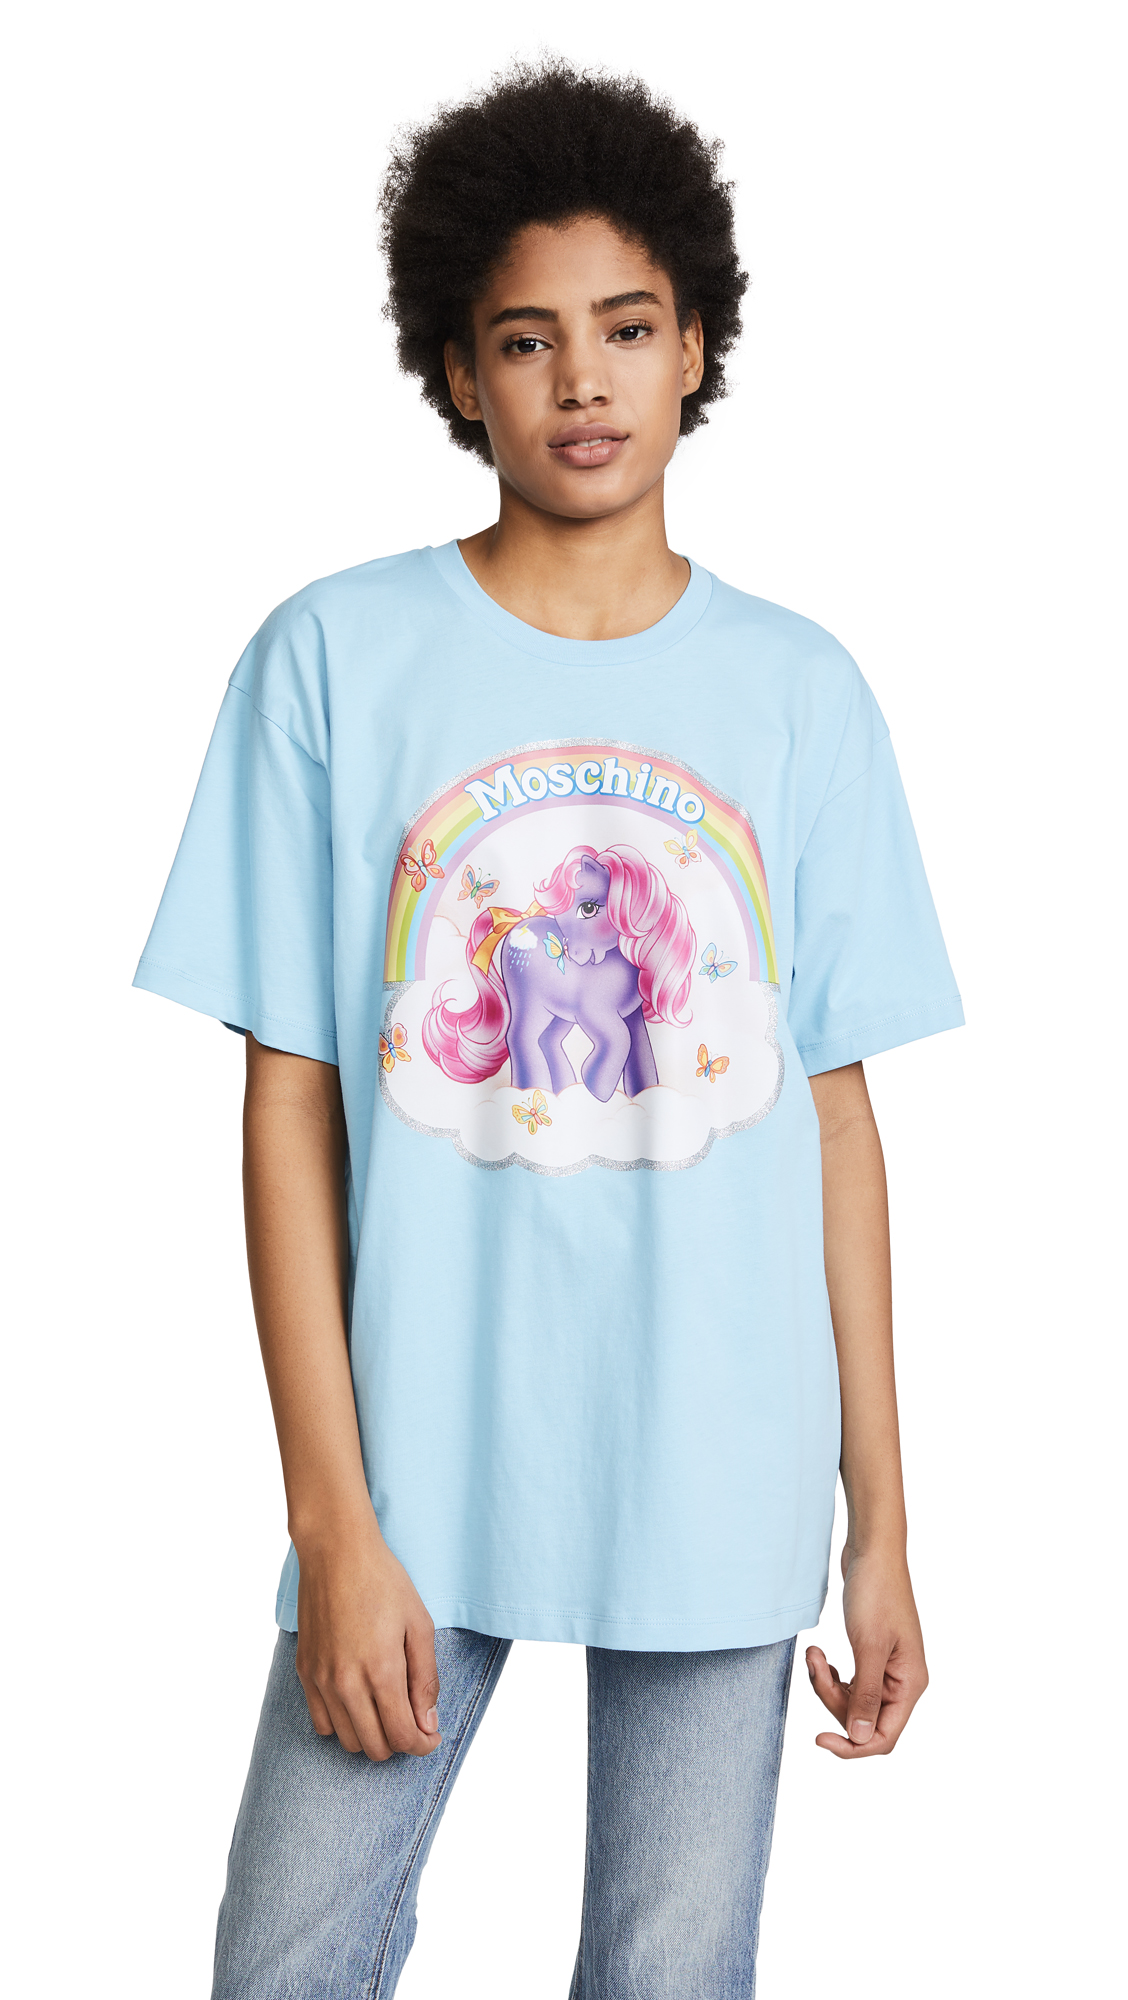 Moschino Oversized My Little Pony Tee - Light Blue